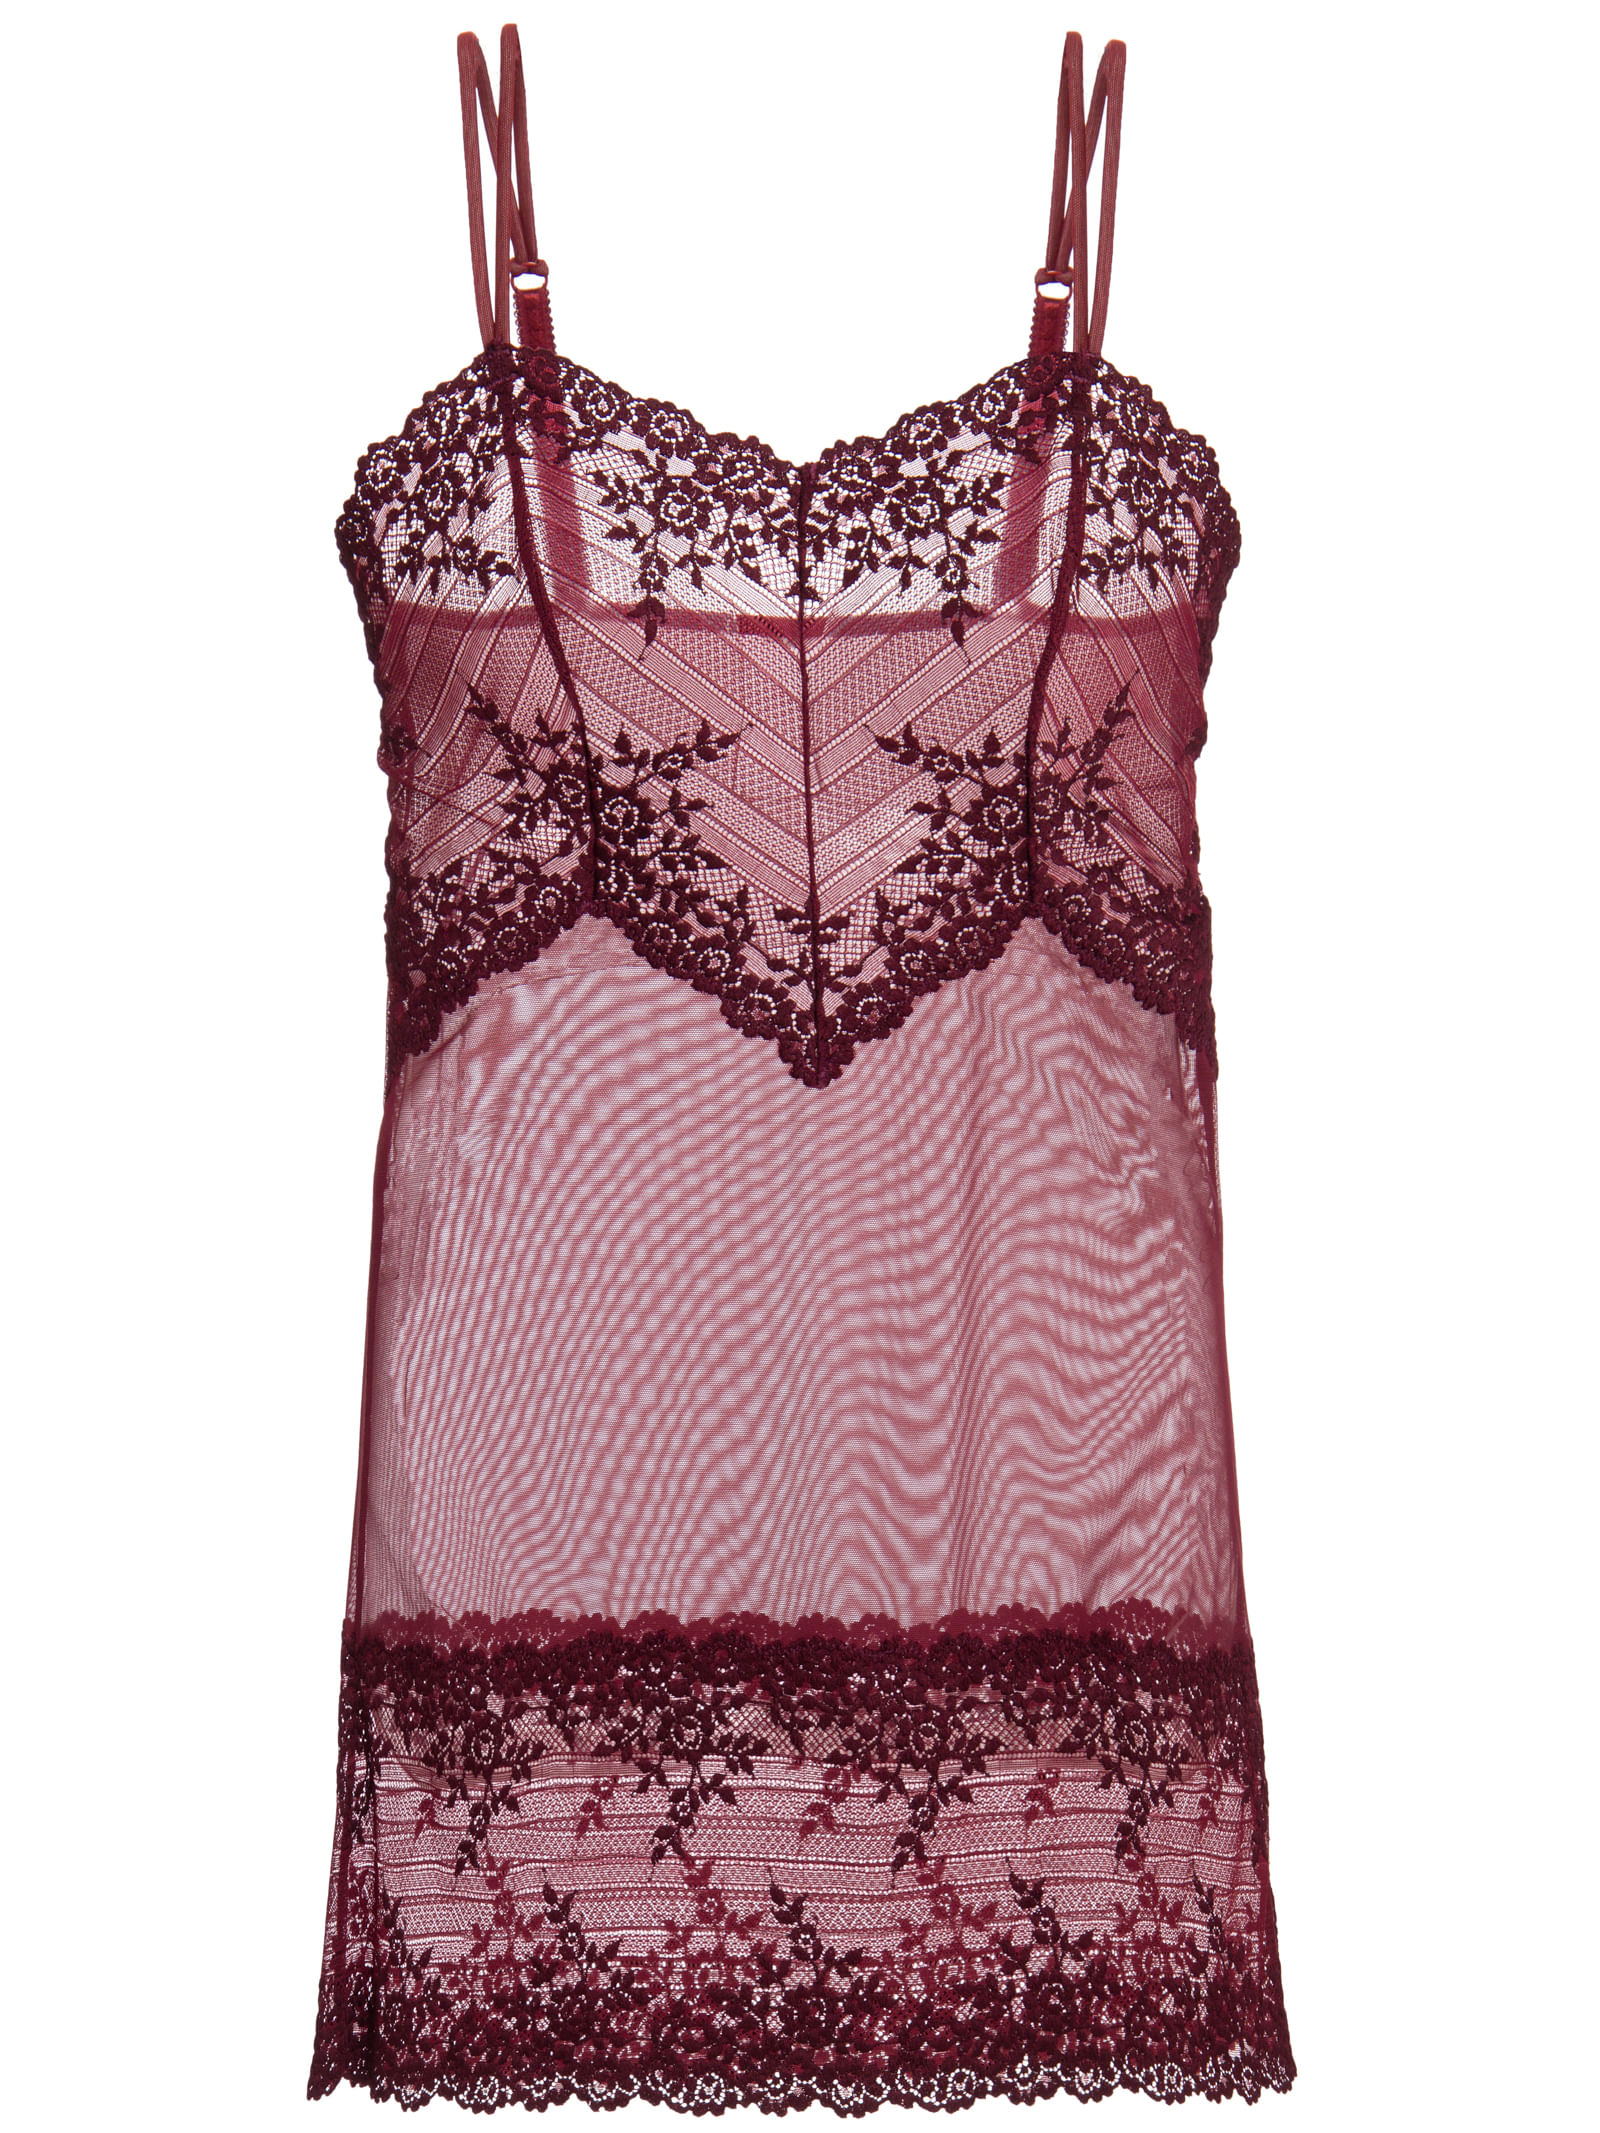 35050018_666_1-CAMISOLA-CT-RENDA-EMBRACE-LACE